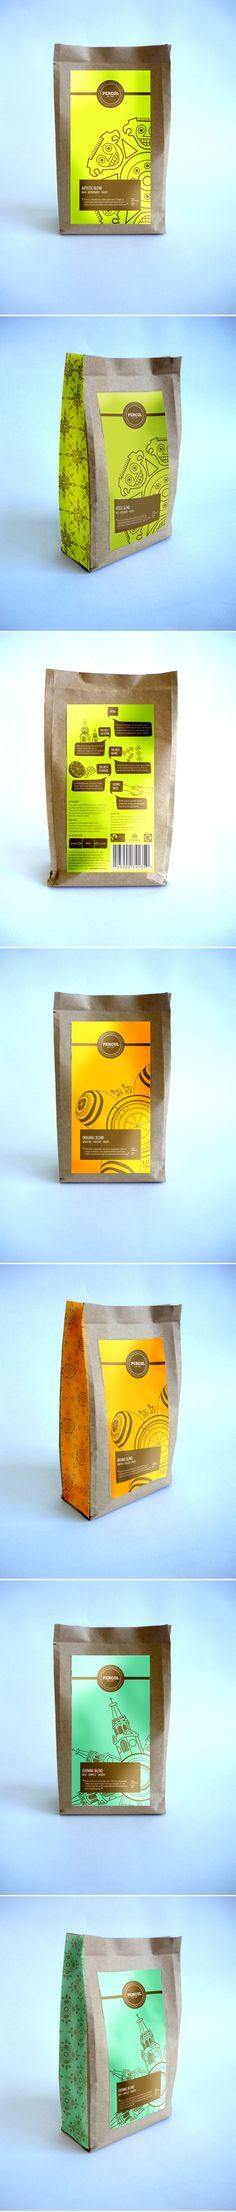 .Time for coffee #packaging PD